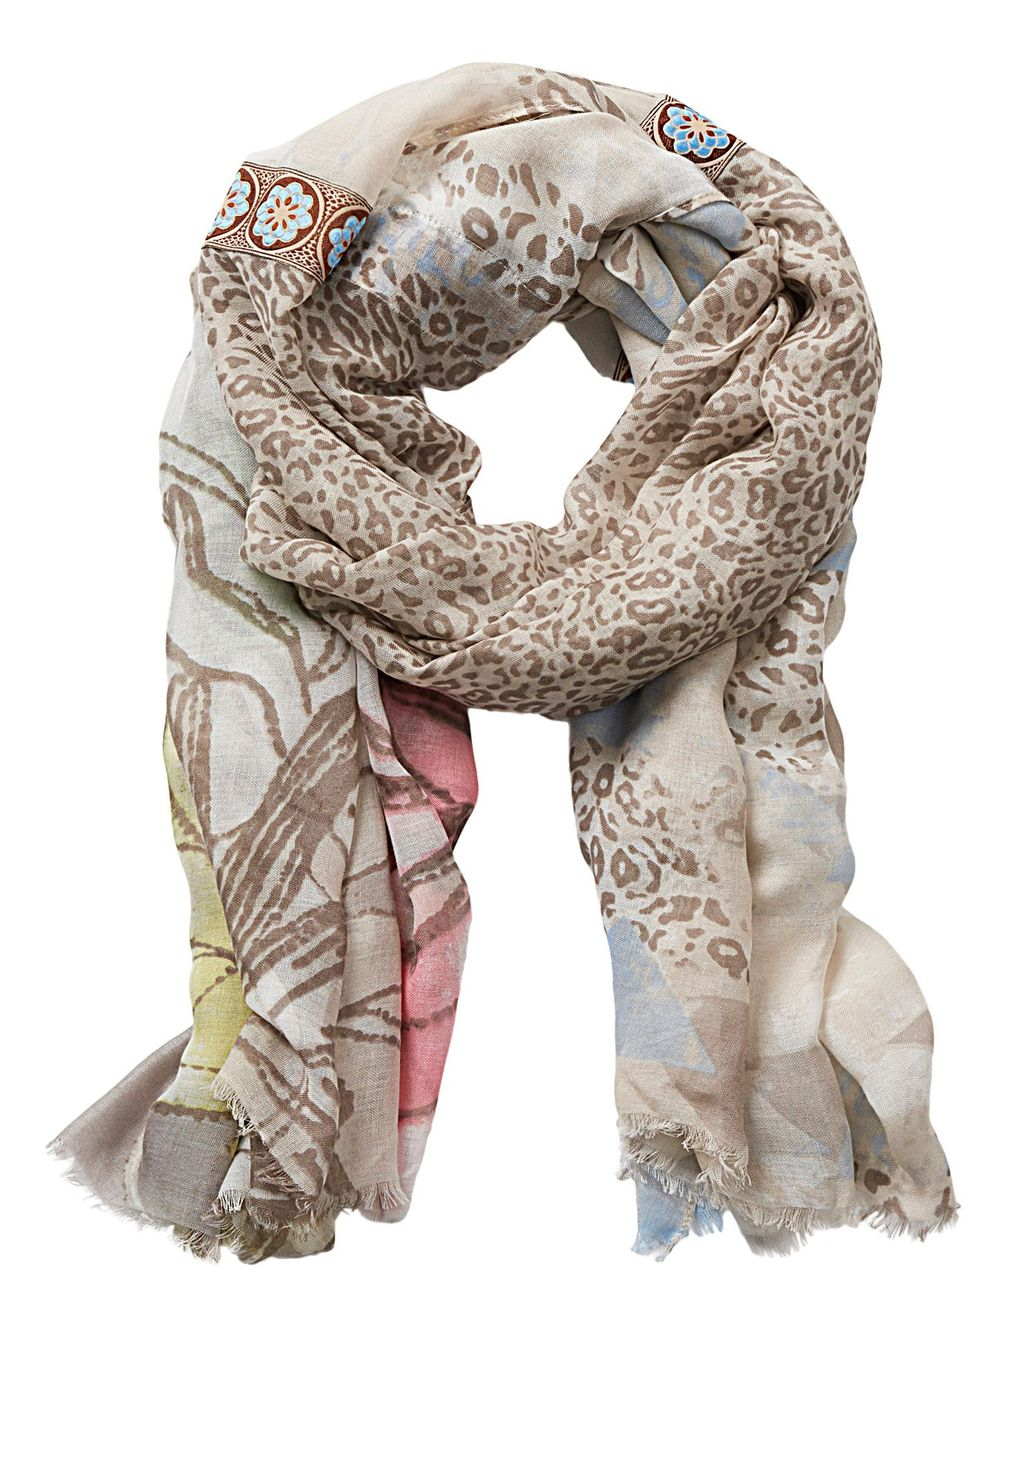 Multi Print Scarf, Cream - predominant colour: ivory/cream; secondary colour: stone; occasions: casual, creative work; type of pattern: heavy; style: regular; size: standard; material: fabric; pattern: patterned/print; season: s/s 2016; wardrobe: highlight